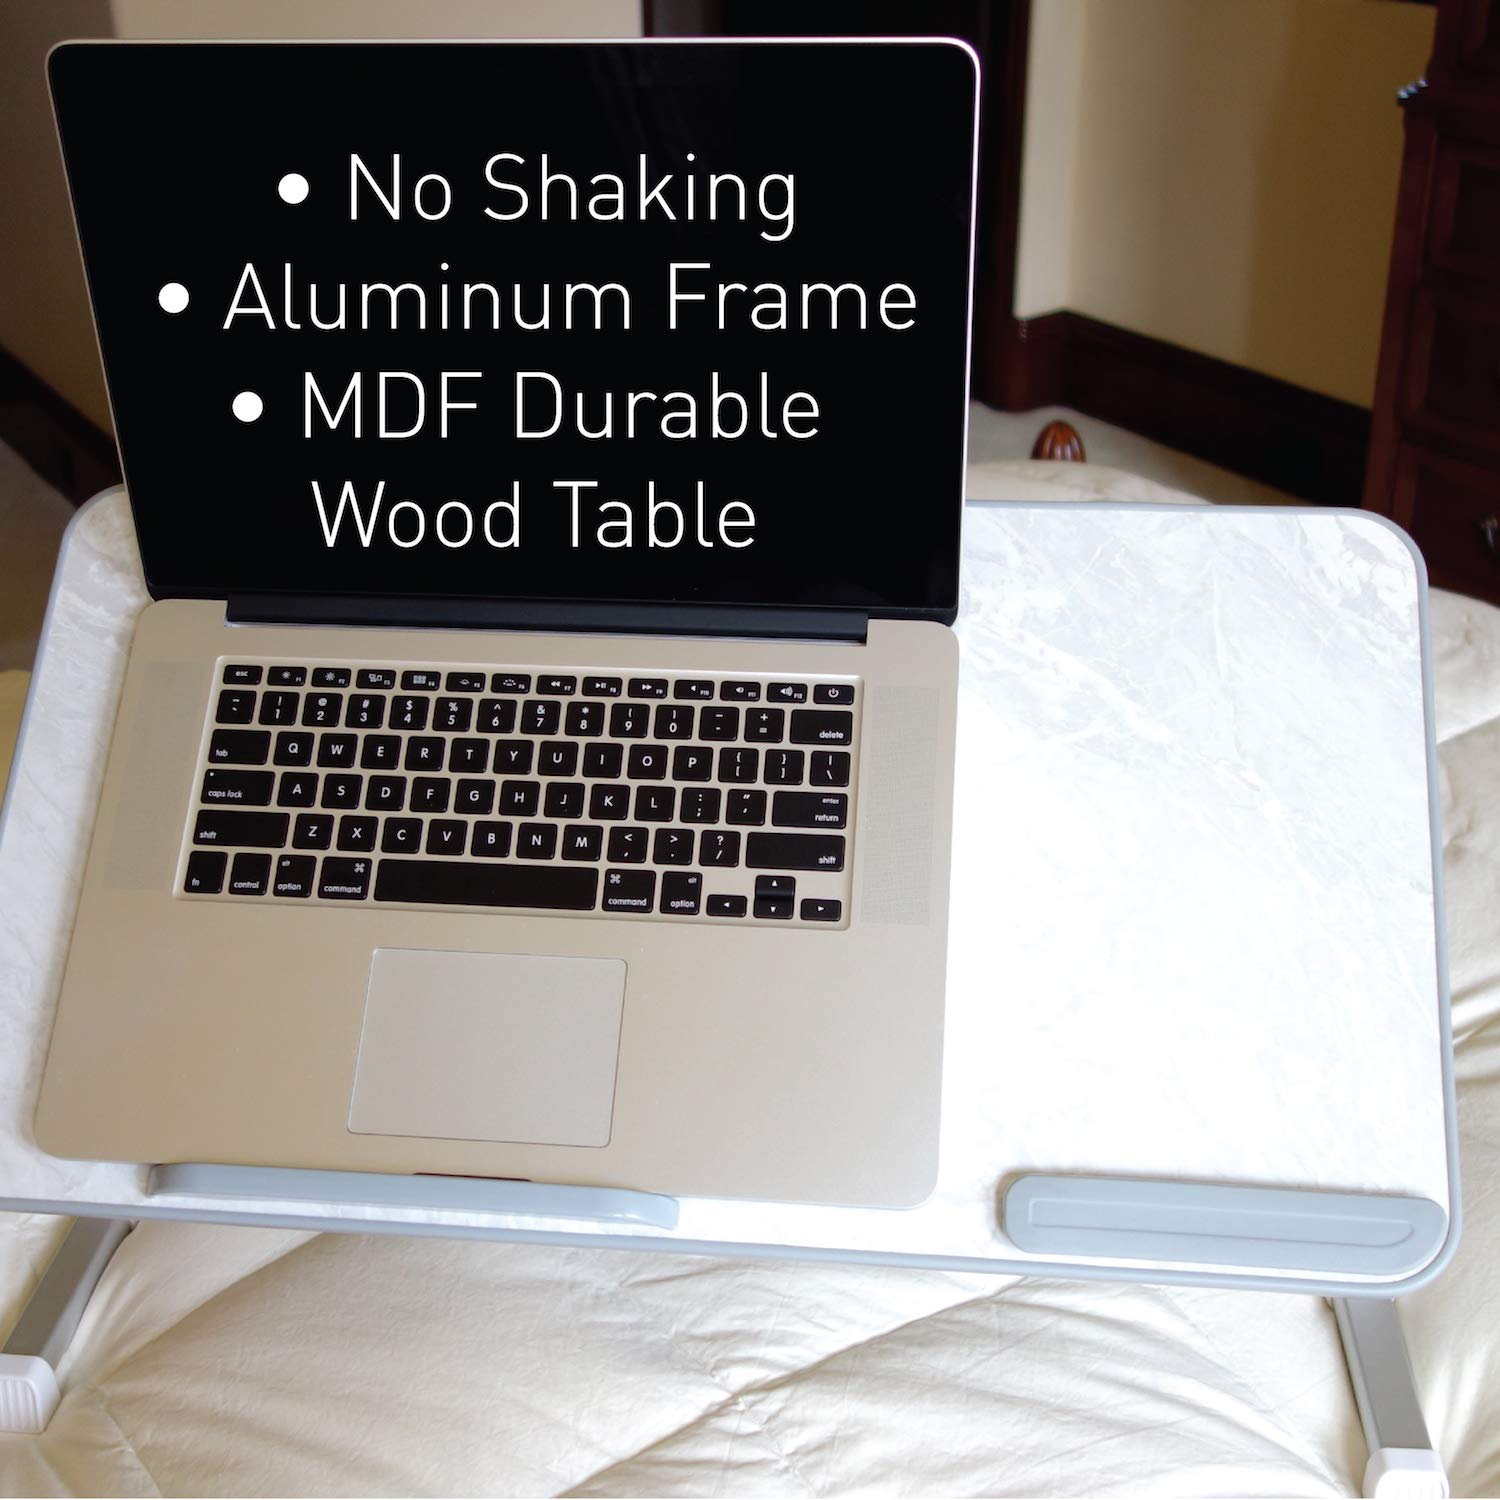 Macally Portable Laptop Table for Bed, [Large Size] Foldable & Height Adjustable Laptop Stand for Table - Sofa, Couch, Recliner - Folding Breakfast Tray Table with Legs, Notebook Lap Holder (Marble) by Macally (Image #7)